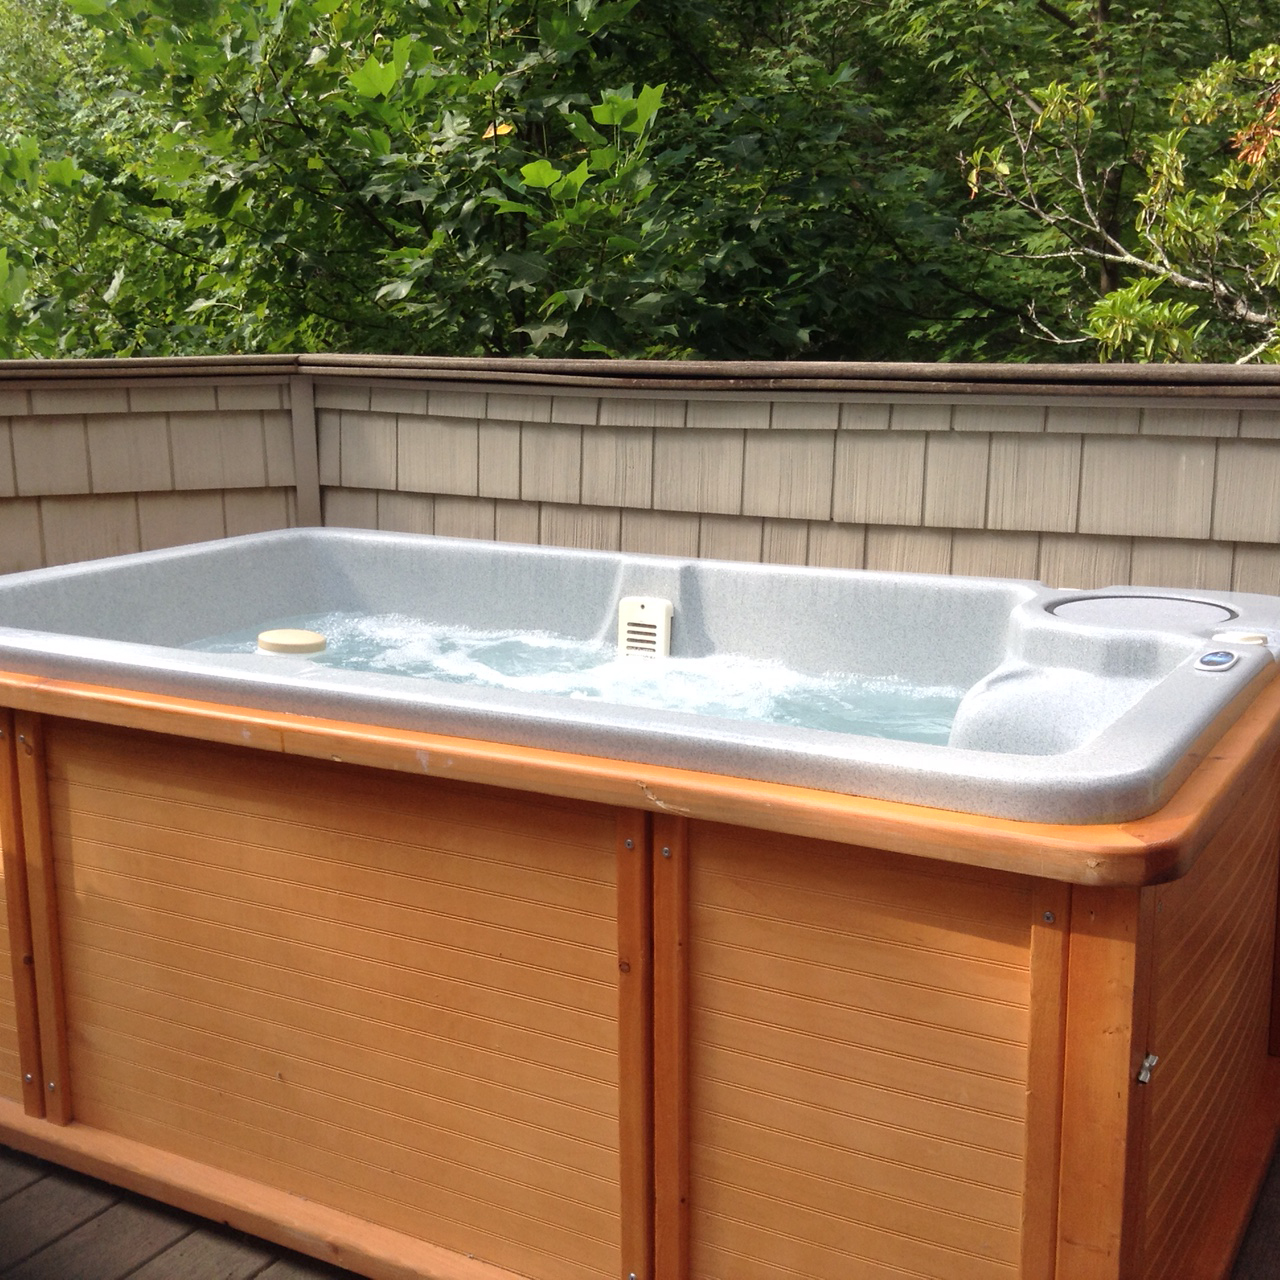 2 person hot tub on deck